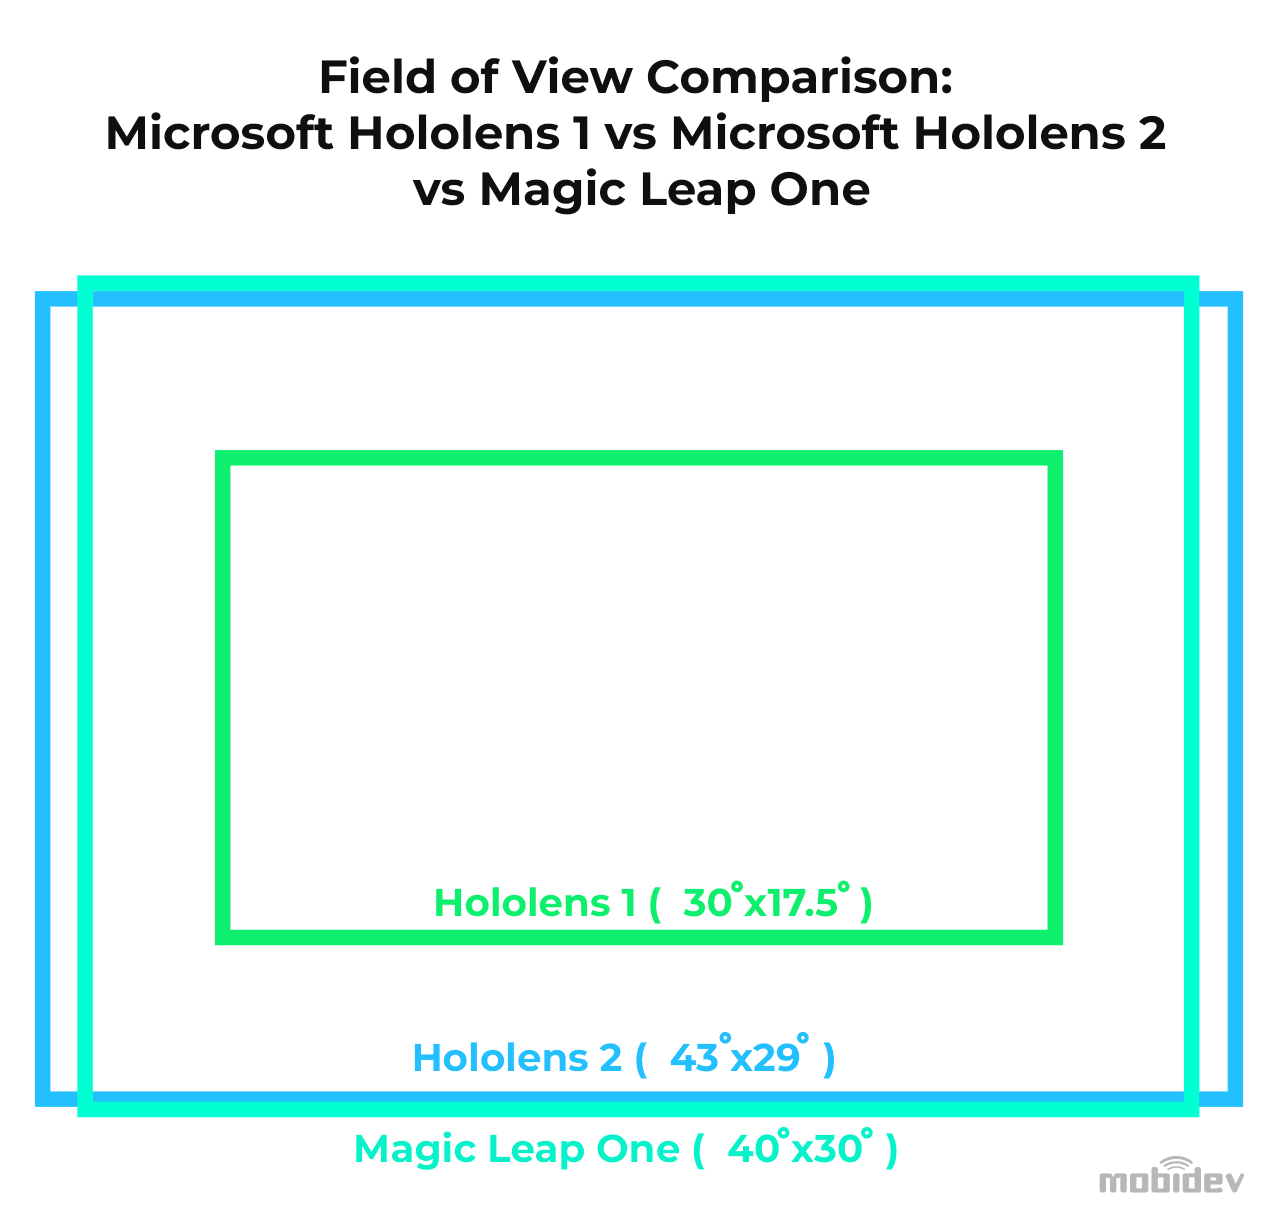 Field of view comparison for HoloLens 1 vs HoloLens 2 vs Magic Leap One